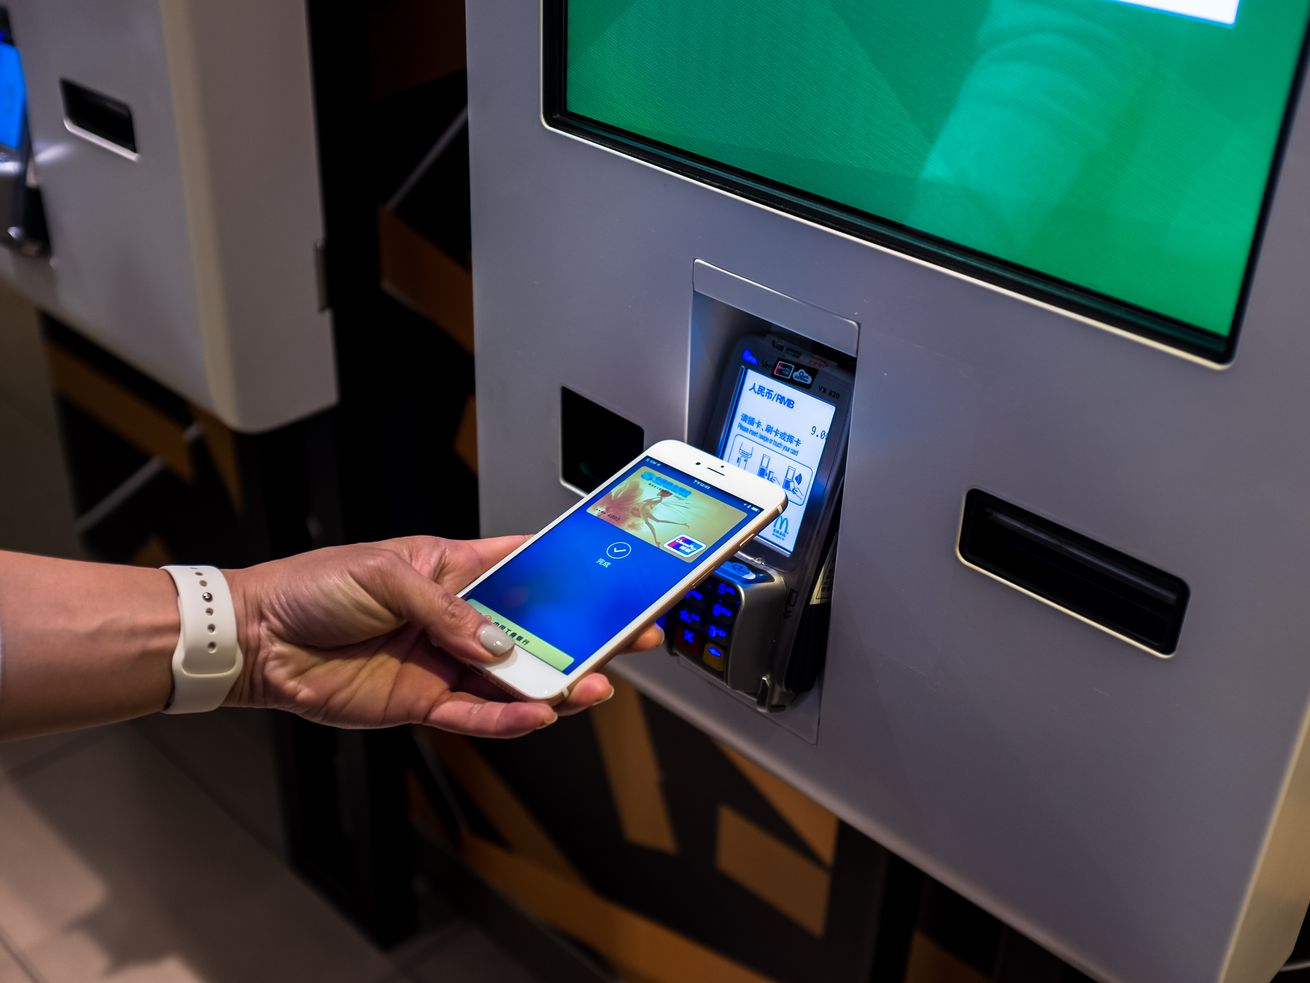 iPhone?s wireless payment technology could be used to unlock doors soon